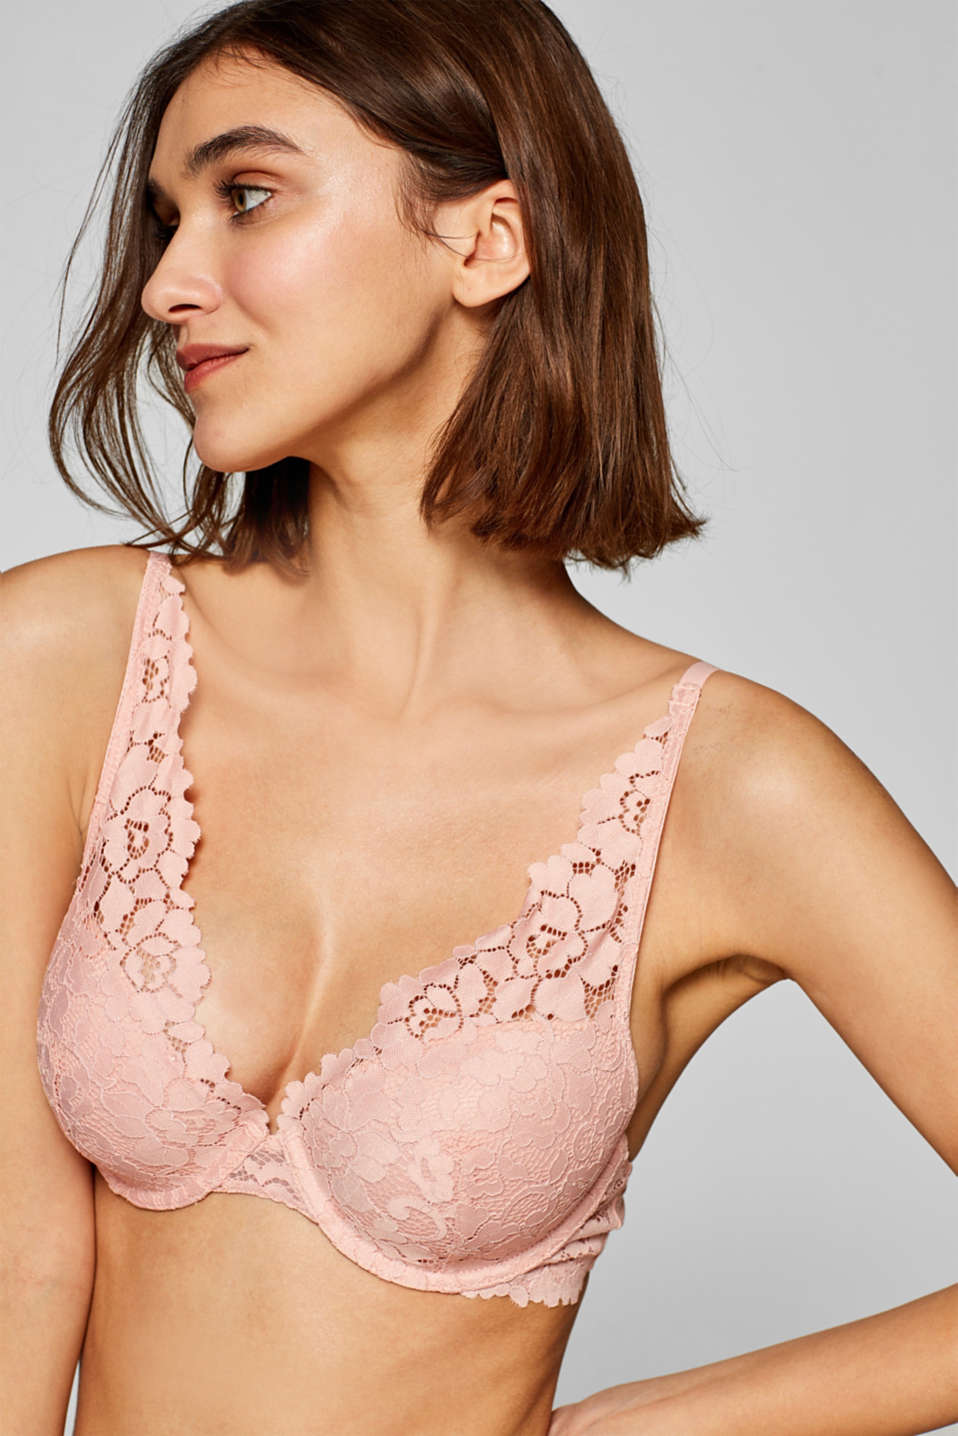 Esprit - Padded underwire bra made of lavish lace